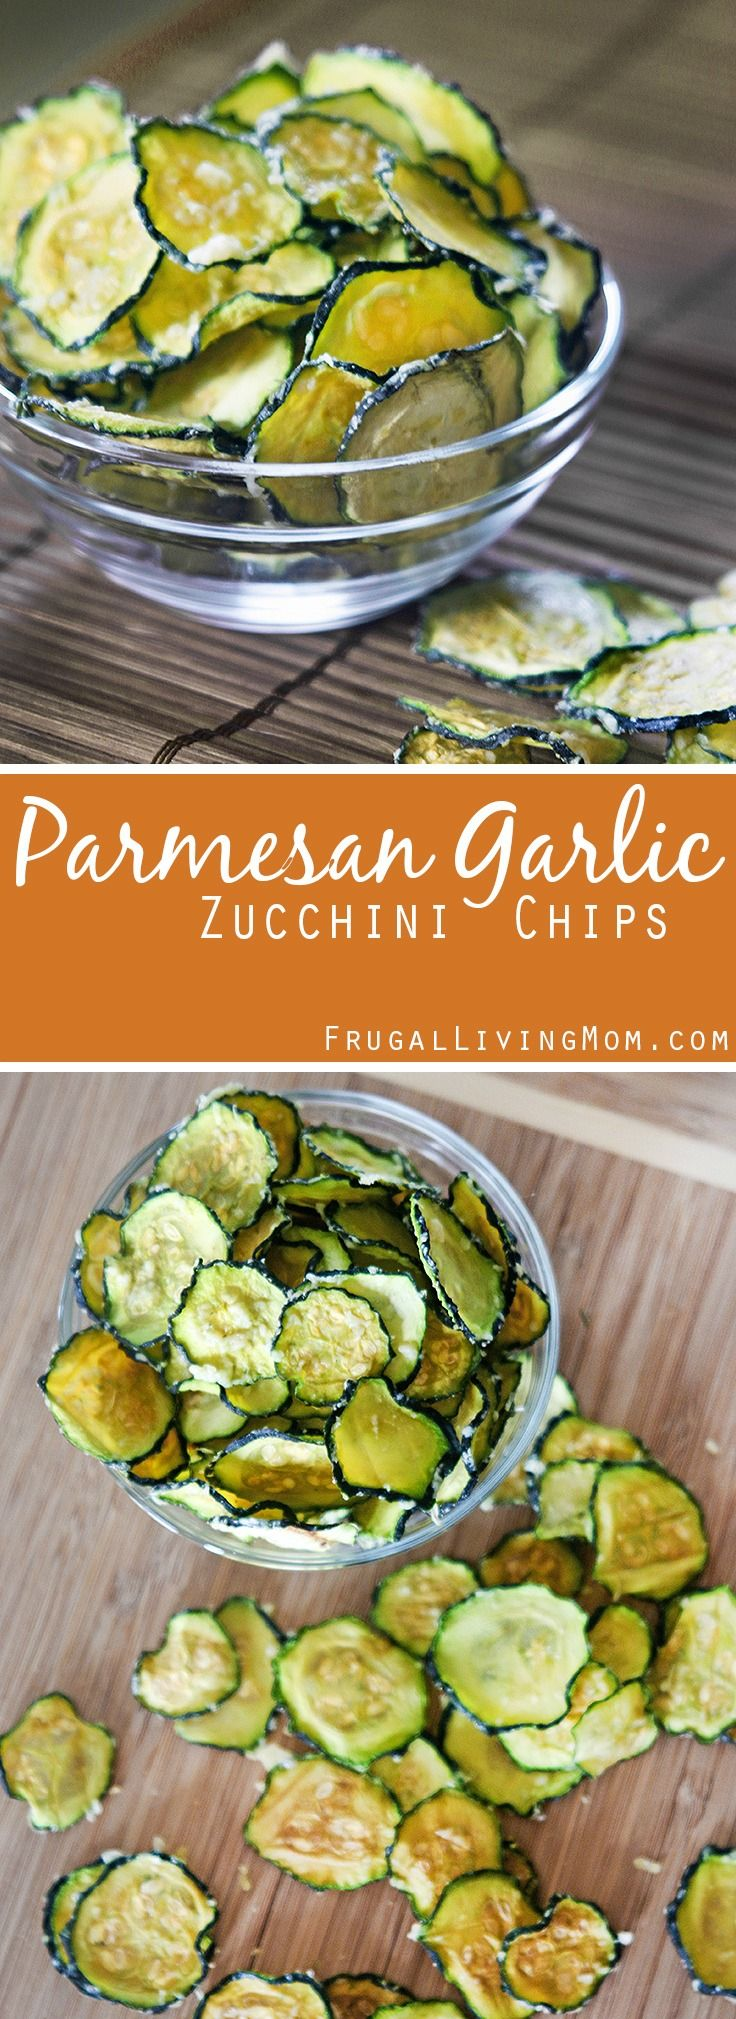 Parmesan Garlic Zucchini Chips!! Hmmmm #Miessence loves the sound of this #recipe!: Garlic Zucchini, Veggie Chips, Parmesan Garlic, Food Dehydrator, Dehydrator Recipes, Healthy Snacks Recipes, Dehydrator Food, Parmesan Chips, Parmesan Zucchini Chips